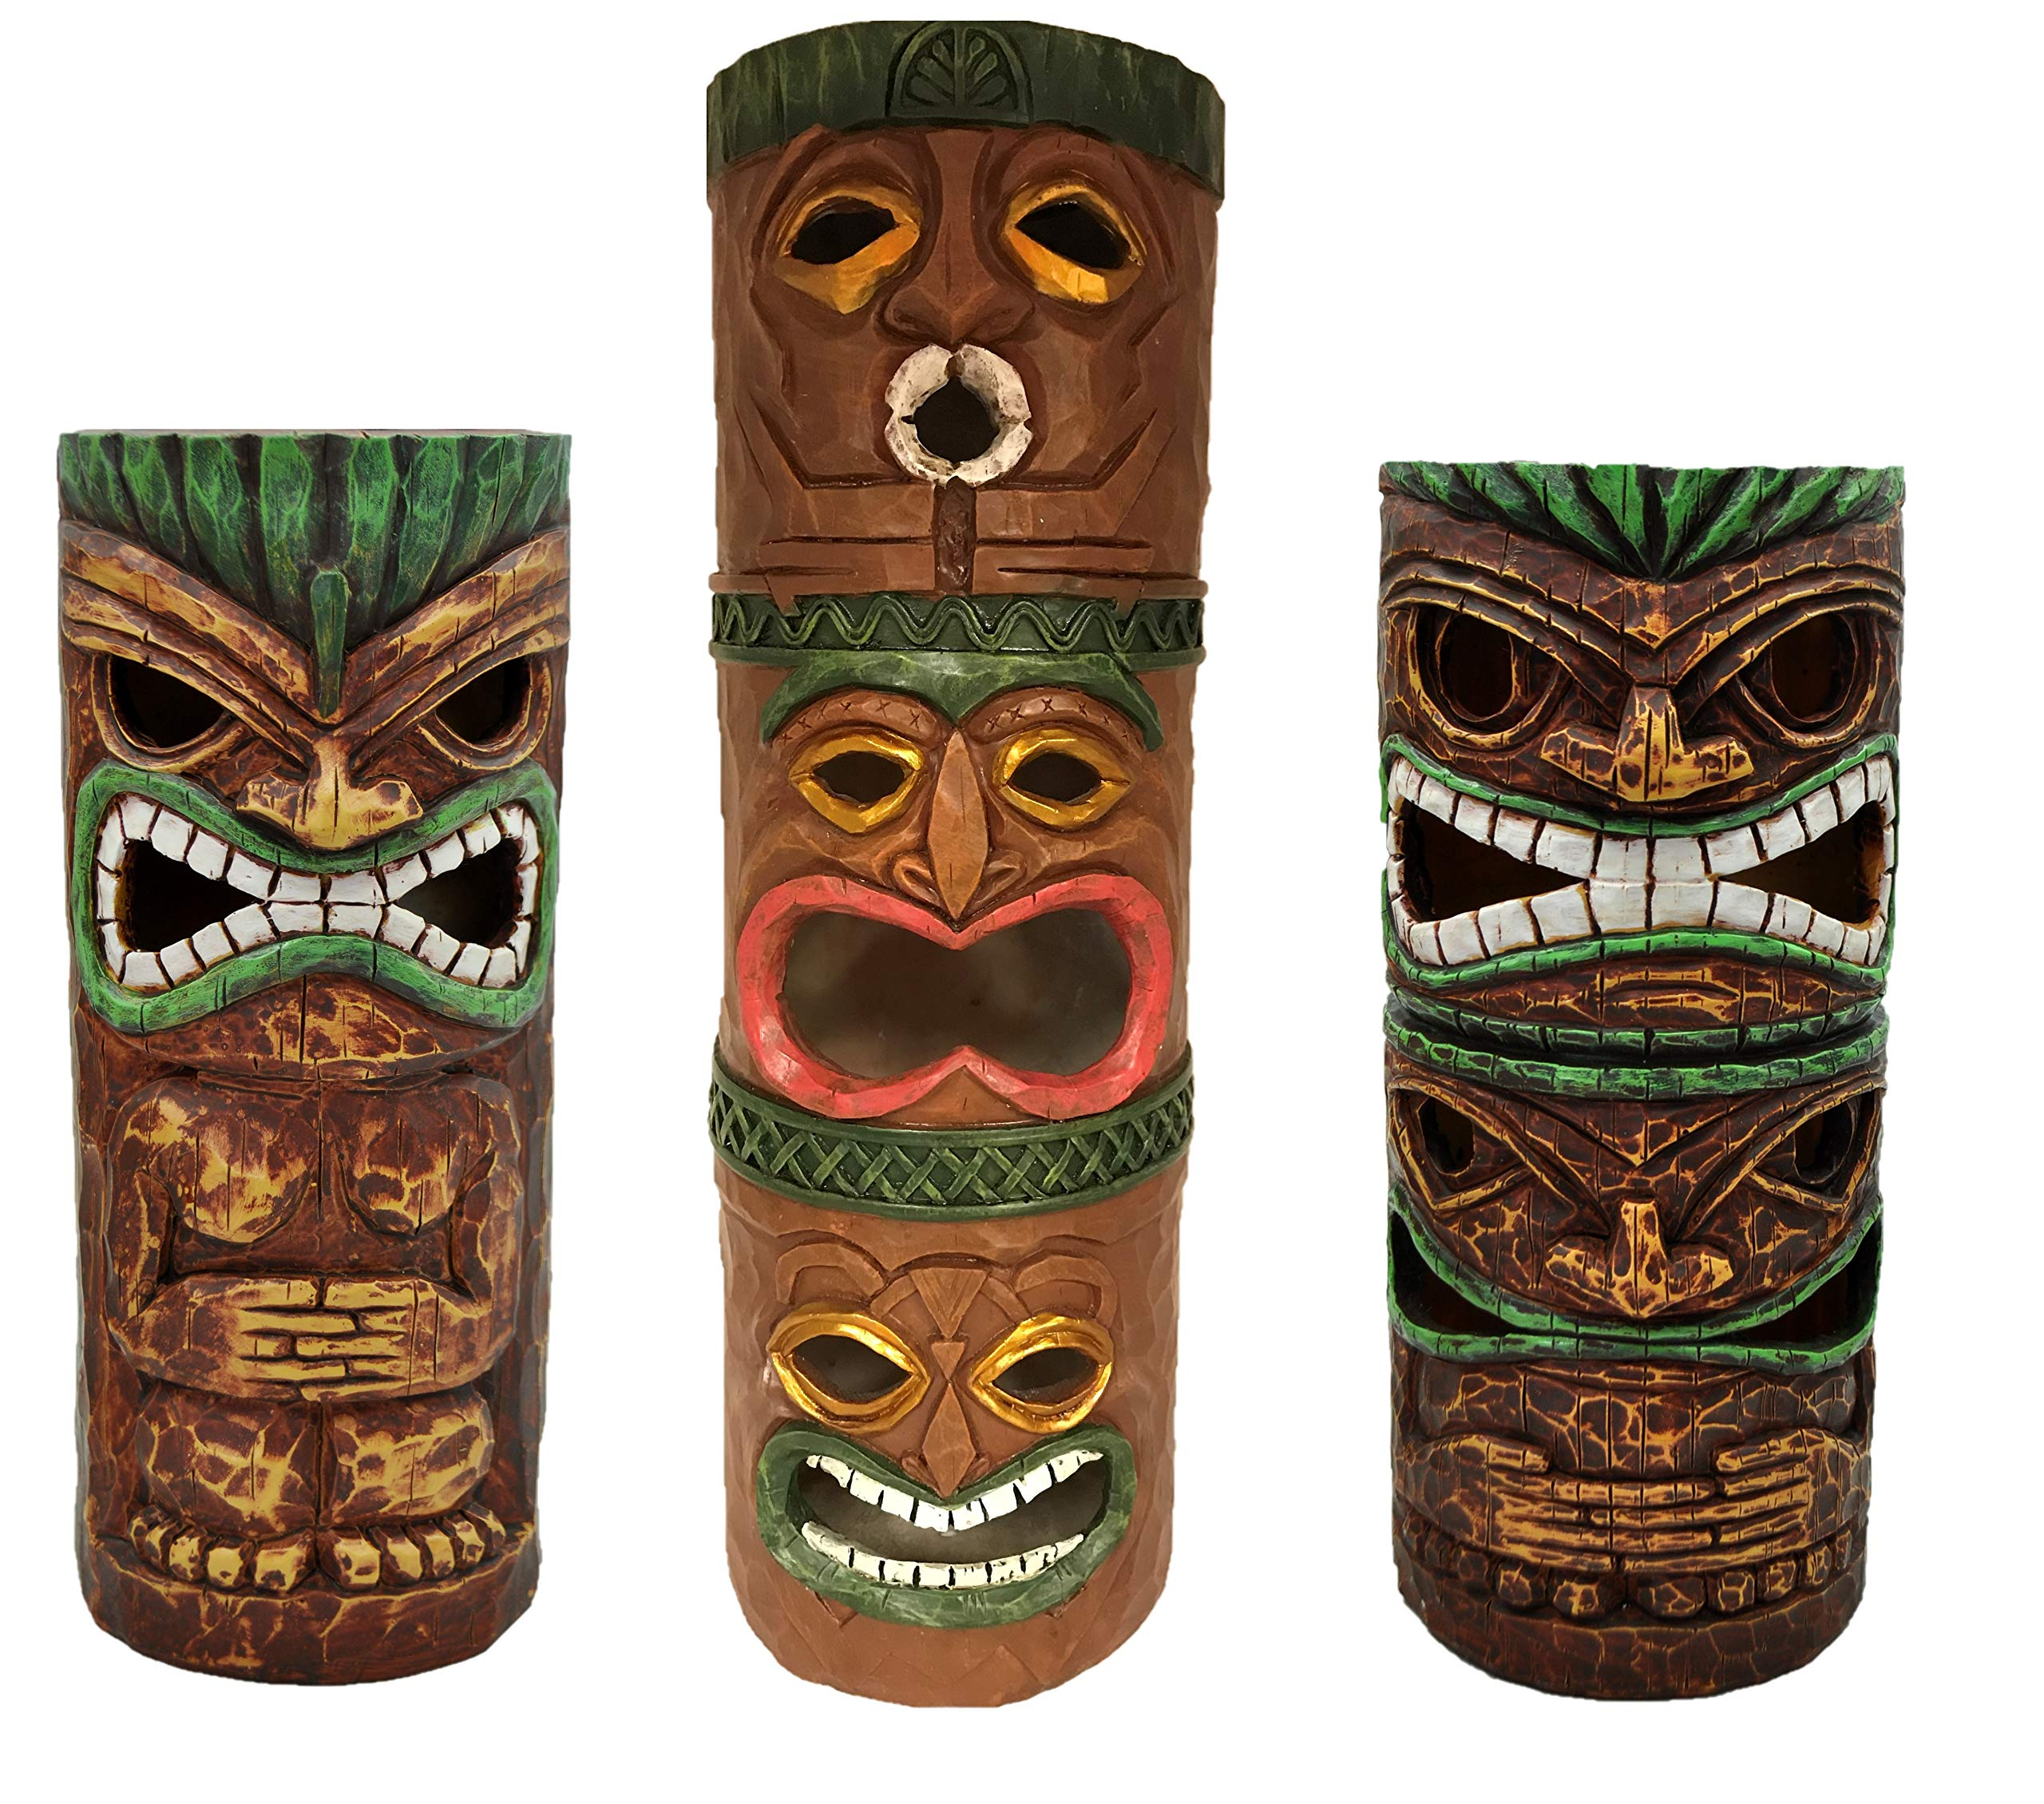 Moonrays 96337 Island Totem Statues, Brown